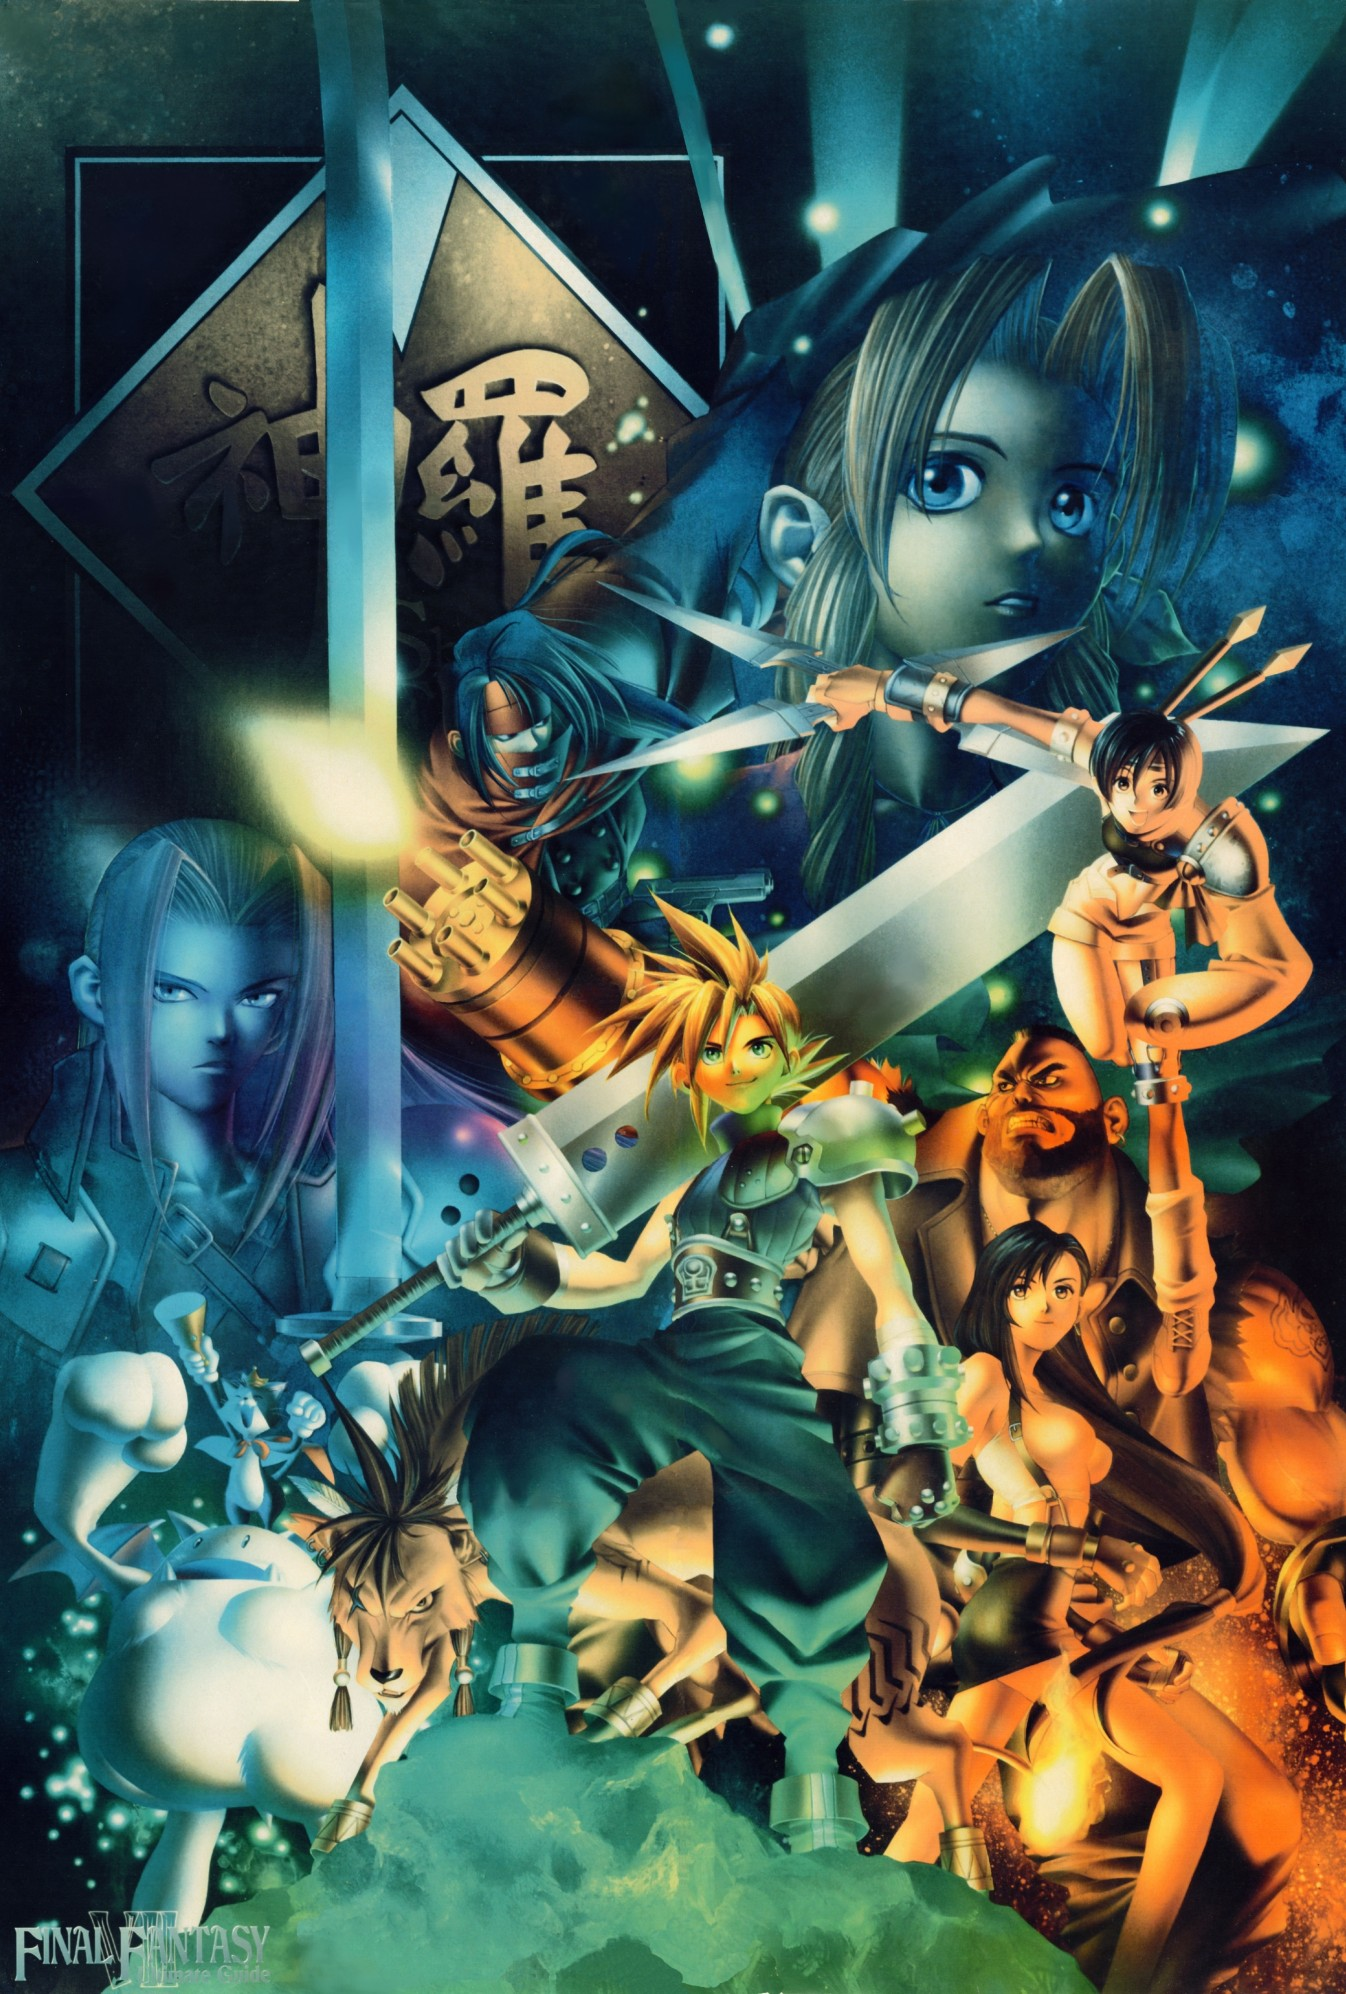 Final fantasy vii mobile wallpaper 19795 zerochan anime image board final fantasy vii mobile wallpaper altavistaventures Gallery